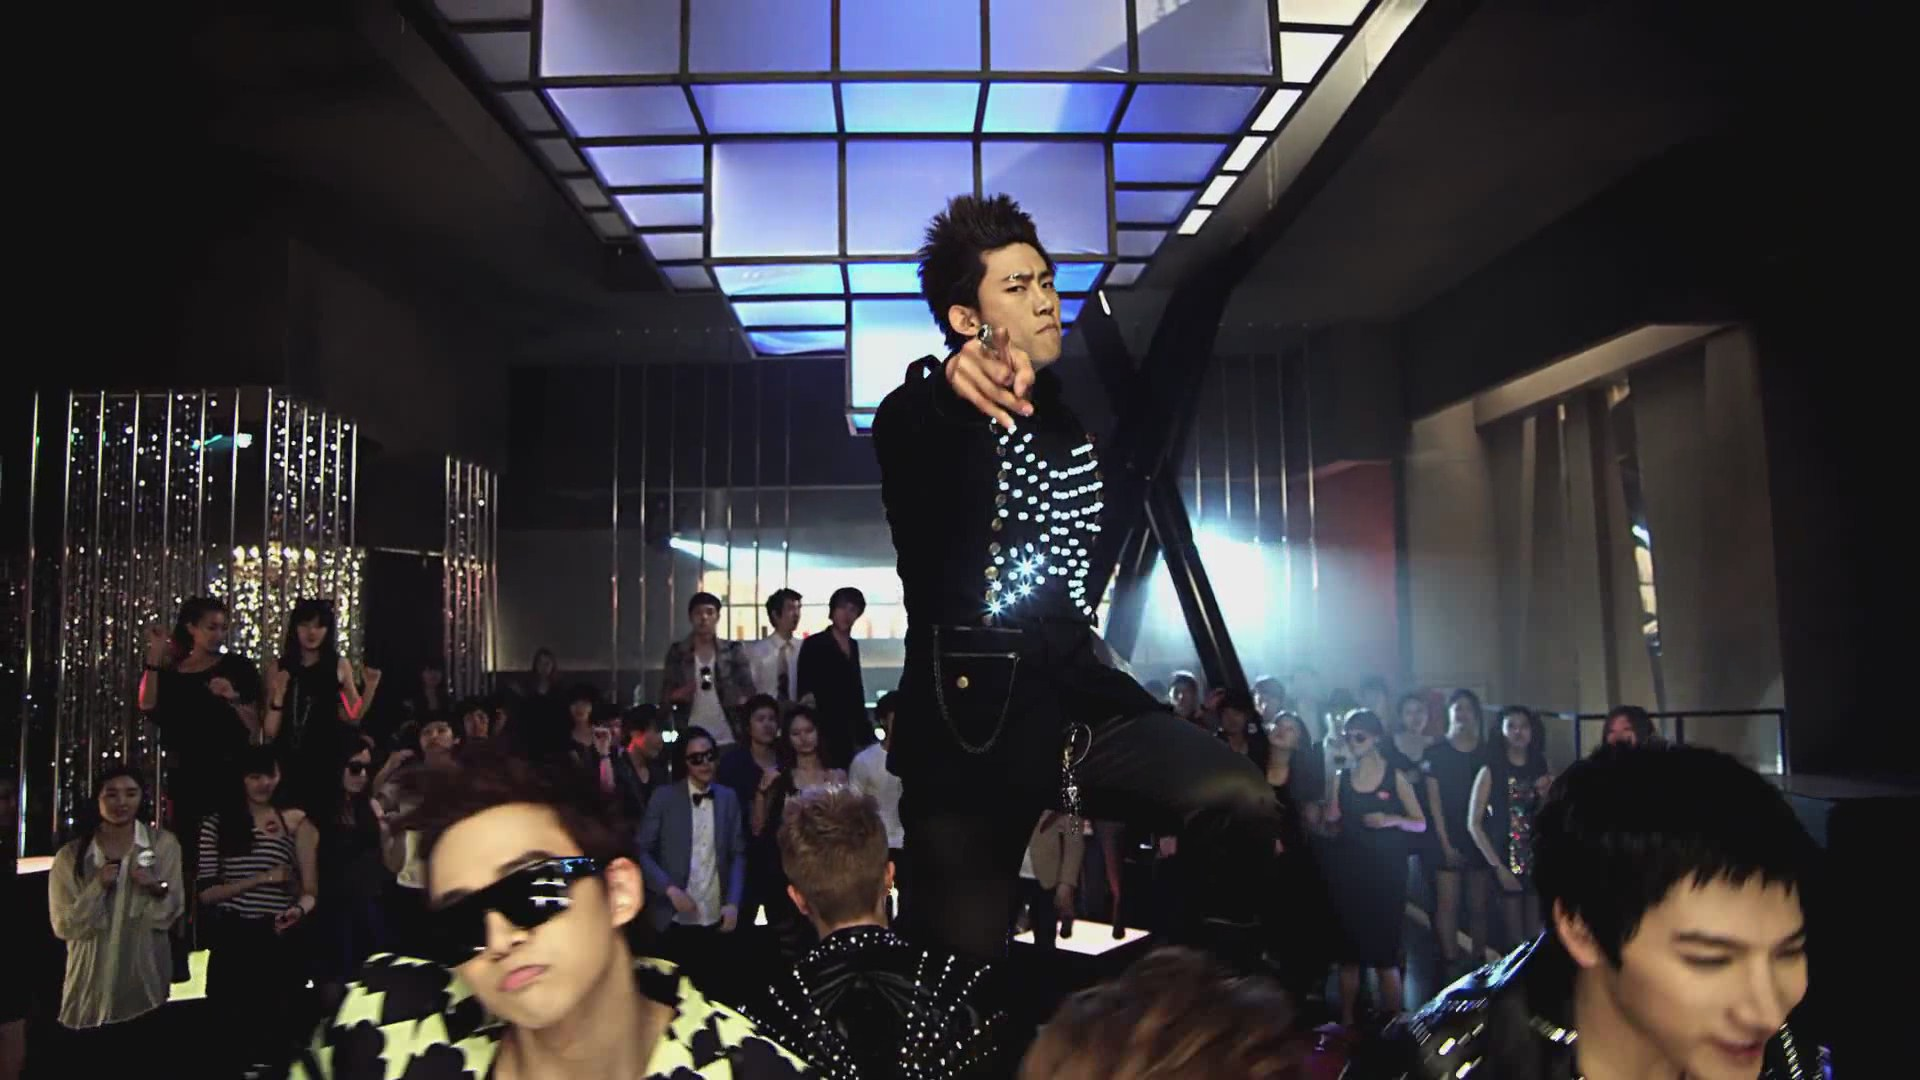 Taecyeon Hands Up MV - taecyeon 2pm Image (27831120) - Fanpop